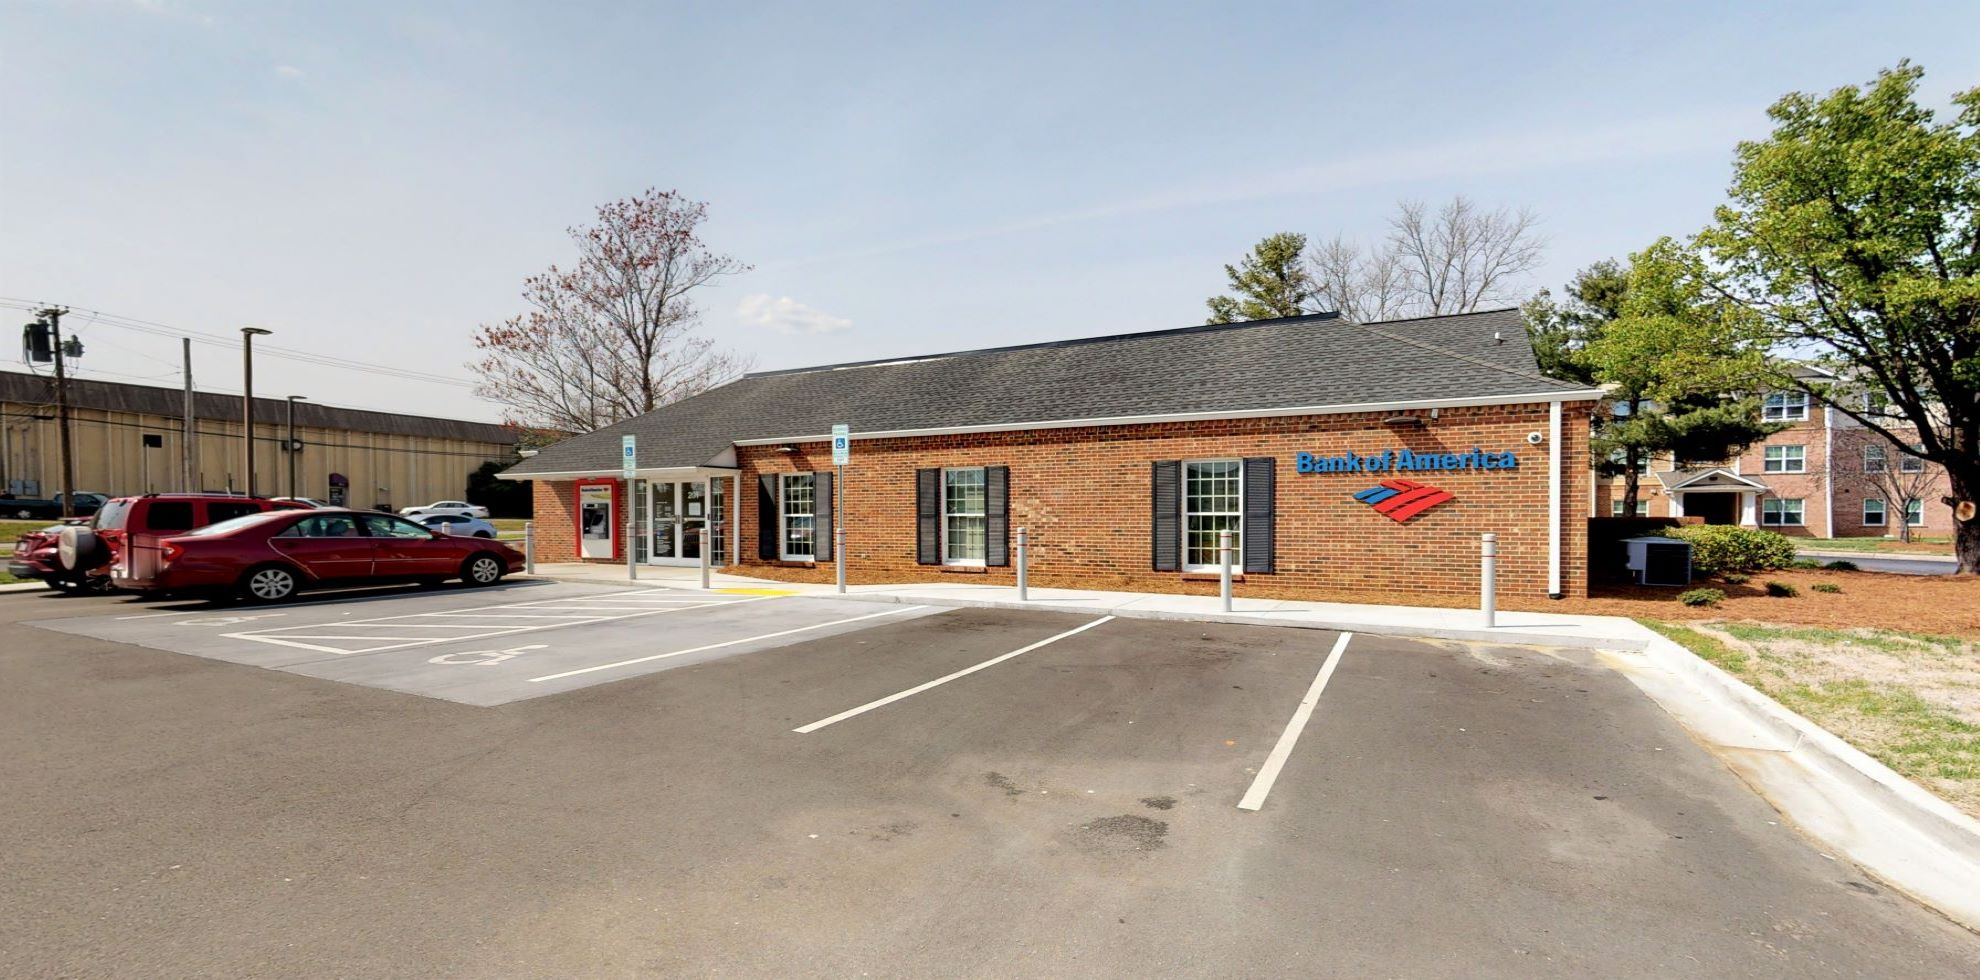 Bank of America financial center with drive-thru ATM   201 E Parris Ave, High Point, NC 27262